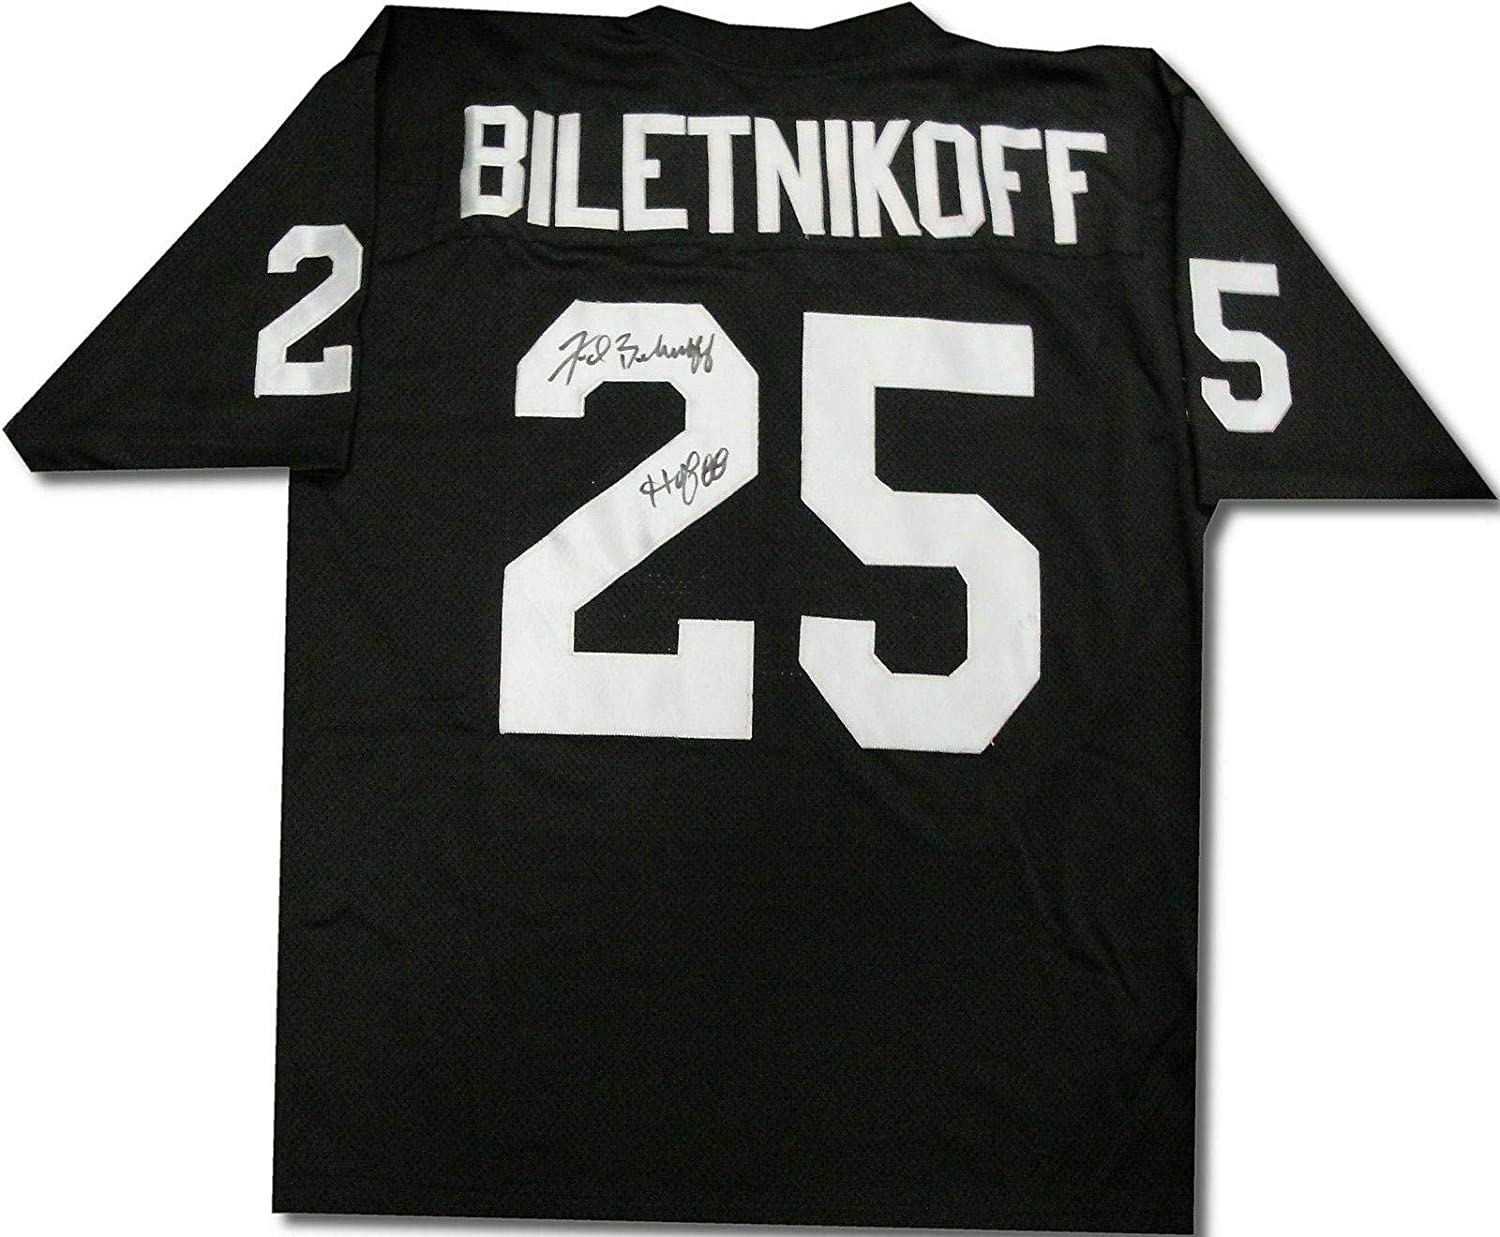 Fred Biletnikoff Signed Autographed Jersey